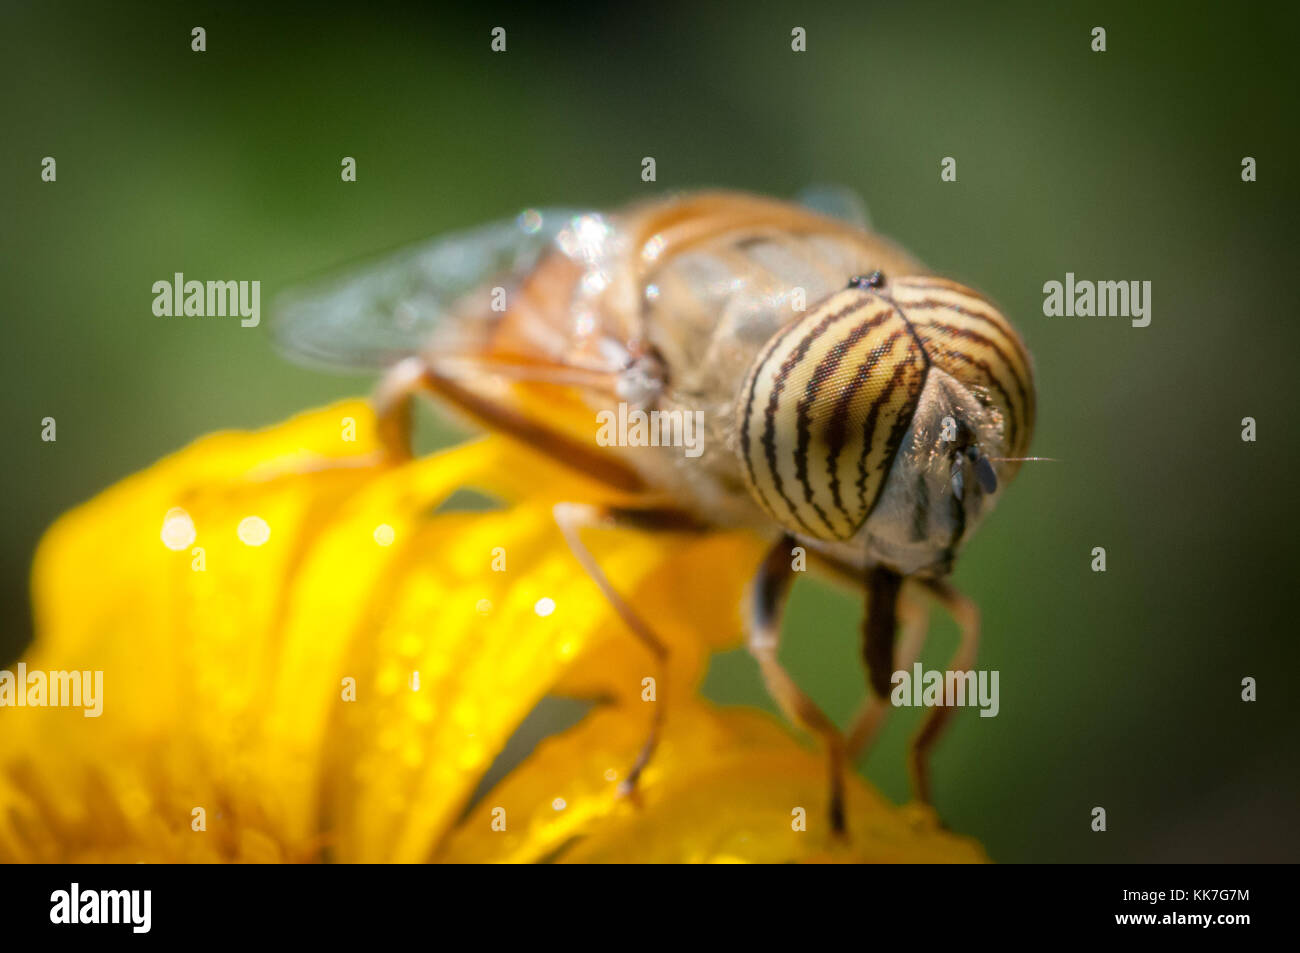 Close up of a bee on a yellow flower at first light - Stock Image